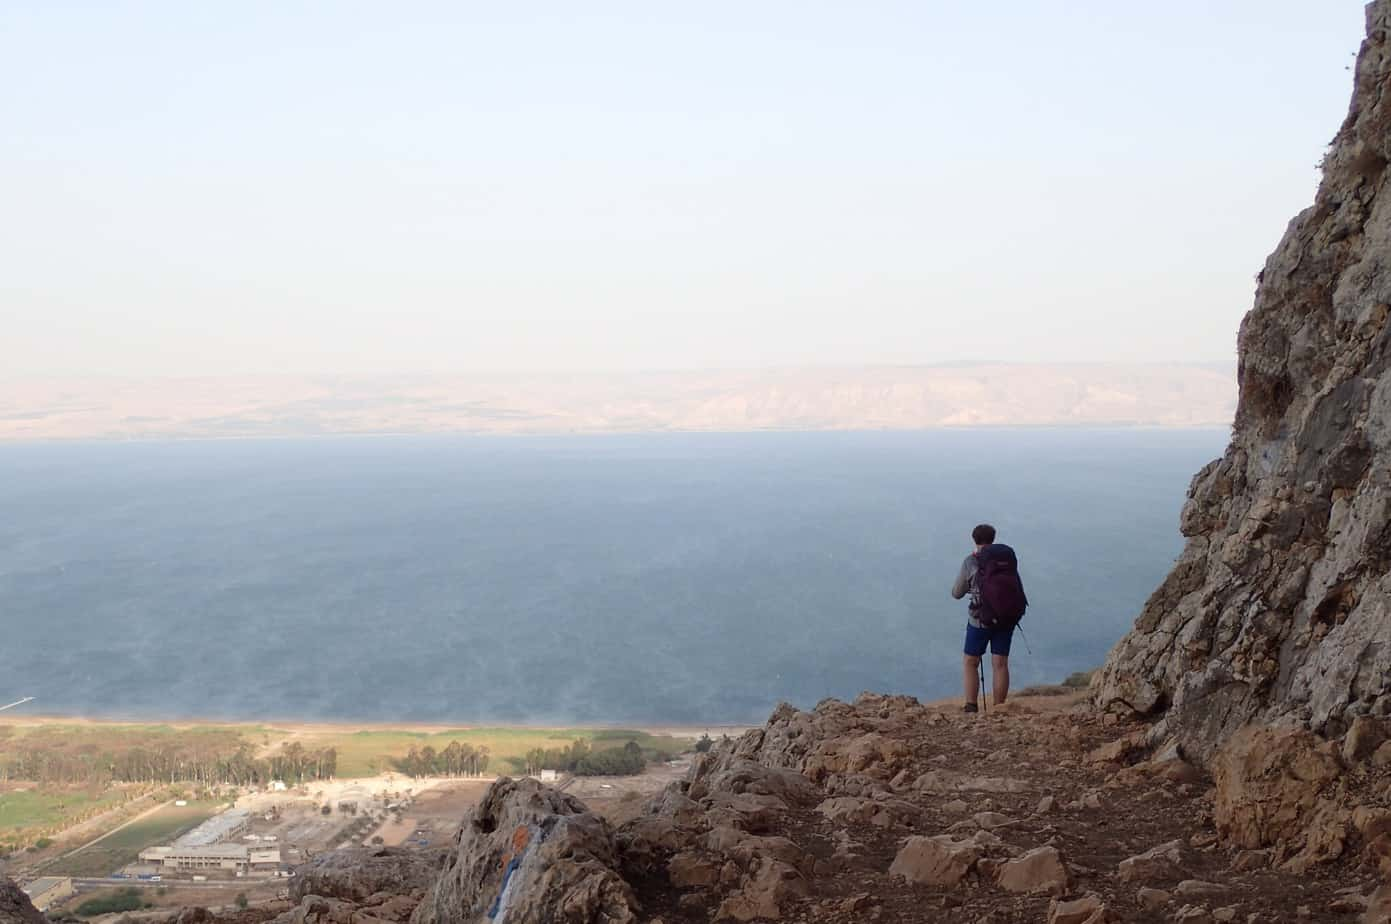 Me overlooking the Sea of Galilee